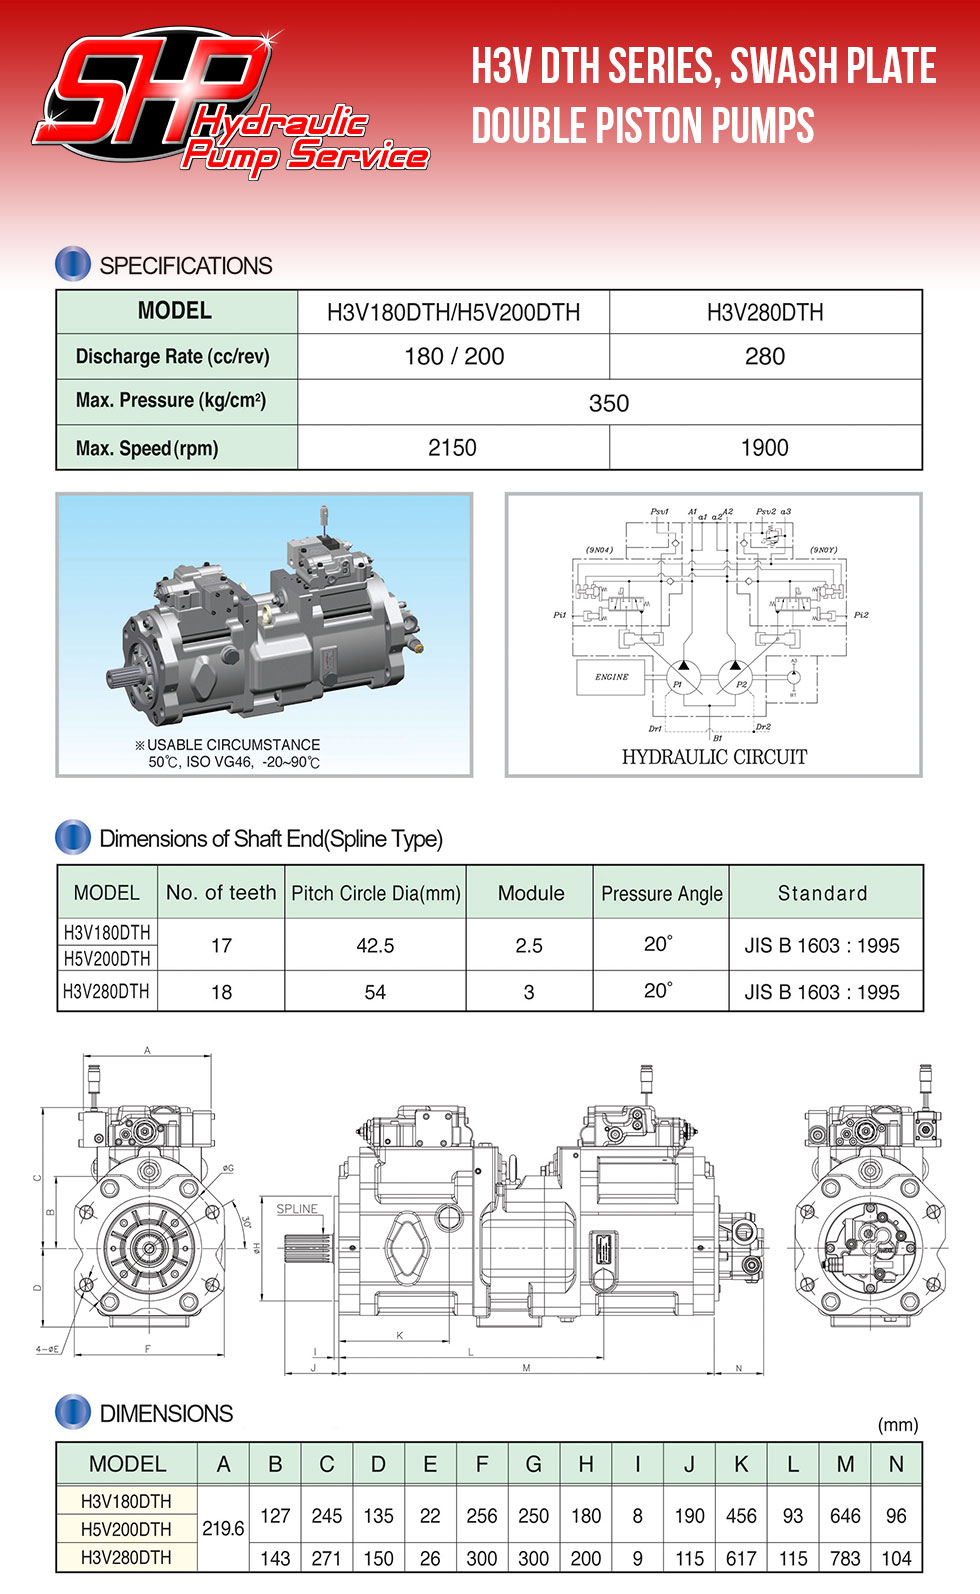 H3V DTH Series, Swash Plate Double Piston Pumps